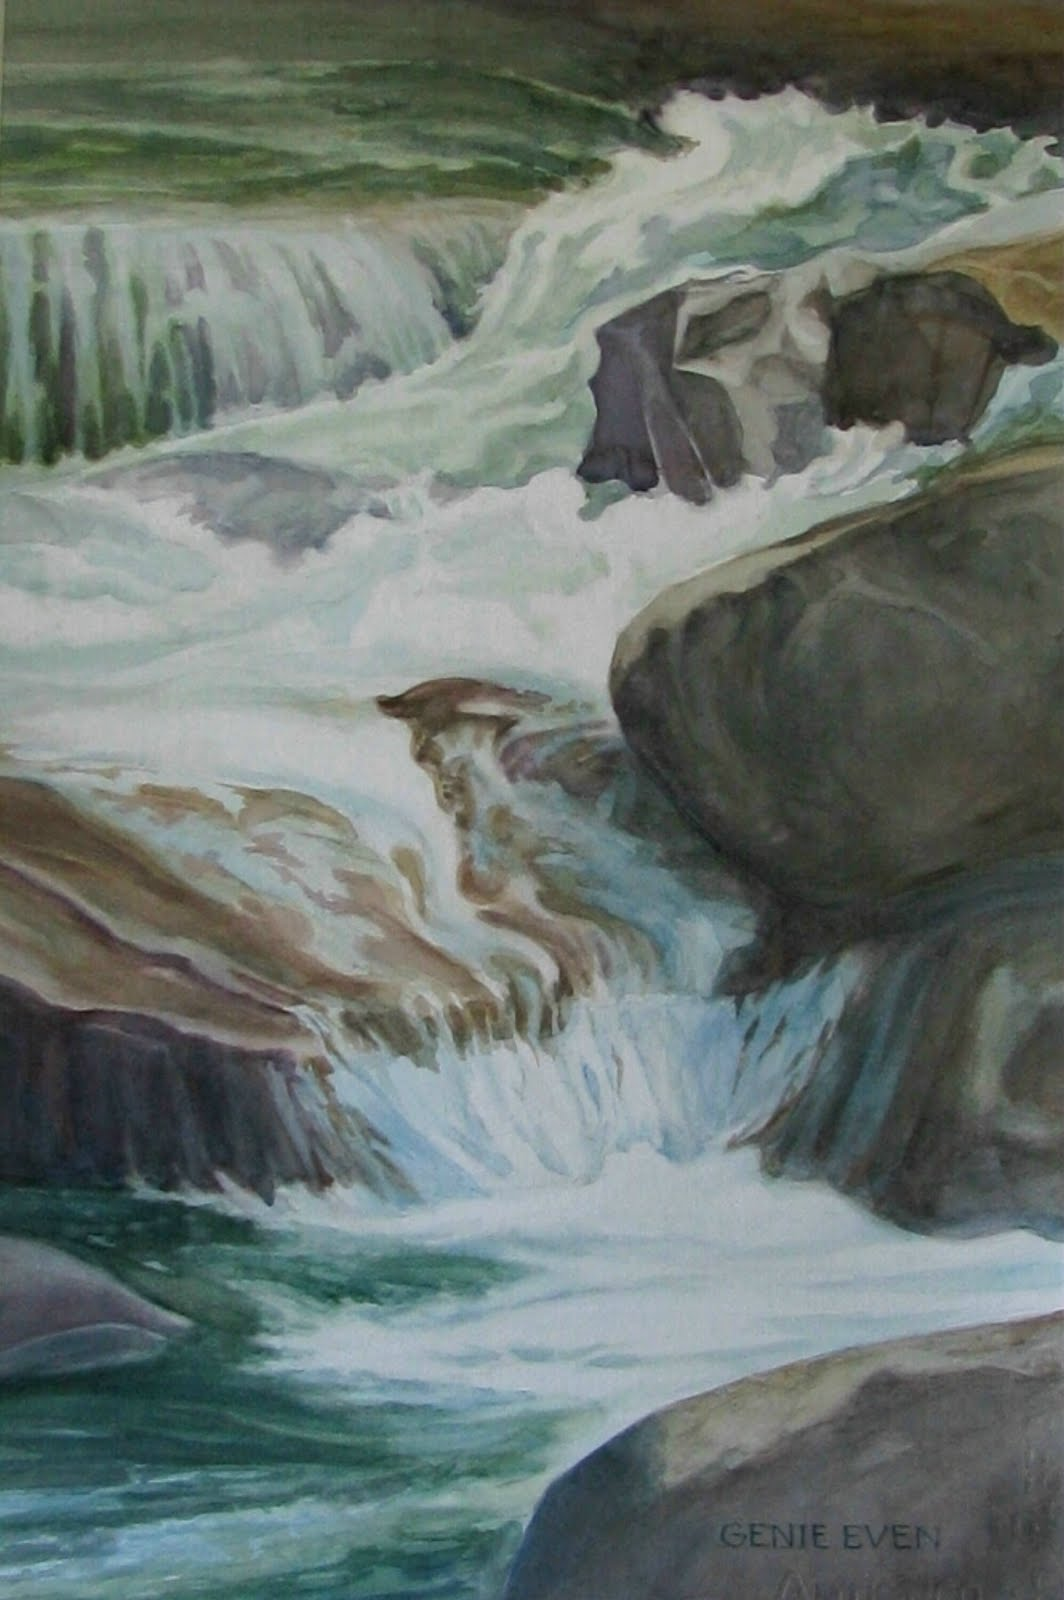 Watercolor art society of houston -  Waters Of The Smokies I Was Accepted By Frank Webb To Be In The33rd International Exhibition Of The Watercolor Art Society Houston March 6 April 9